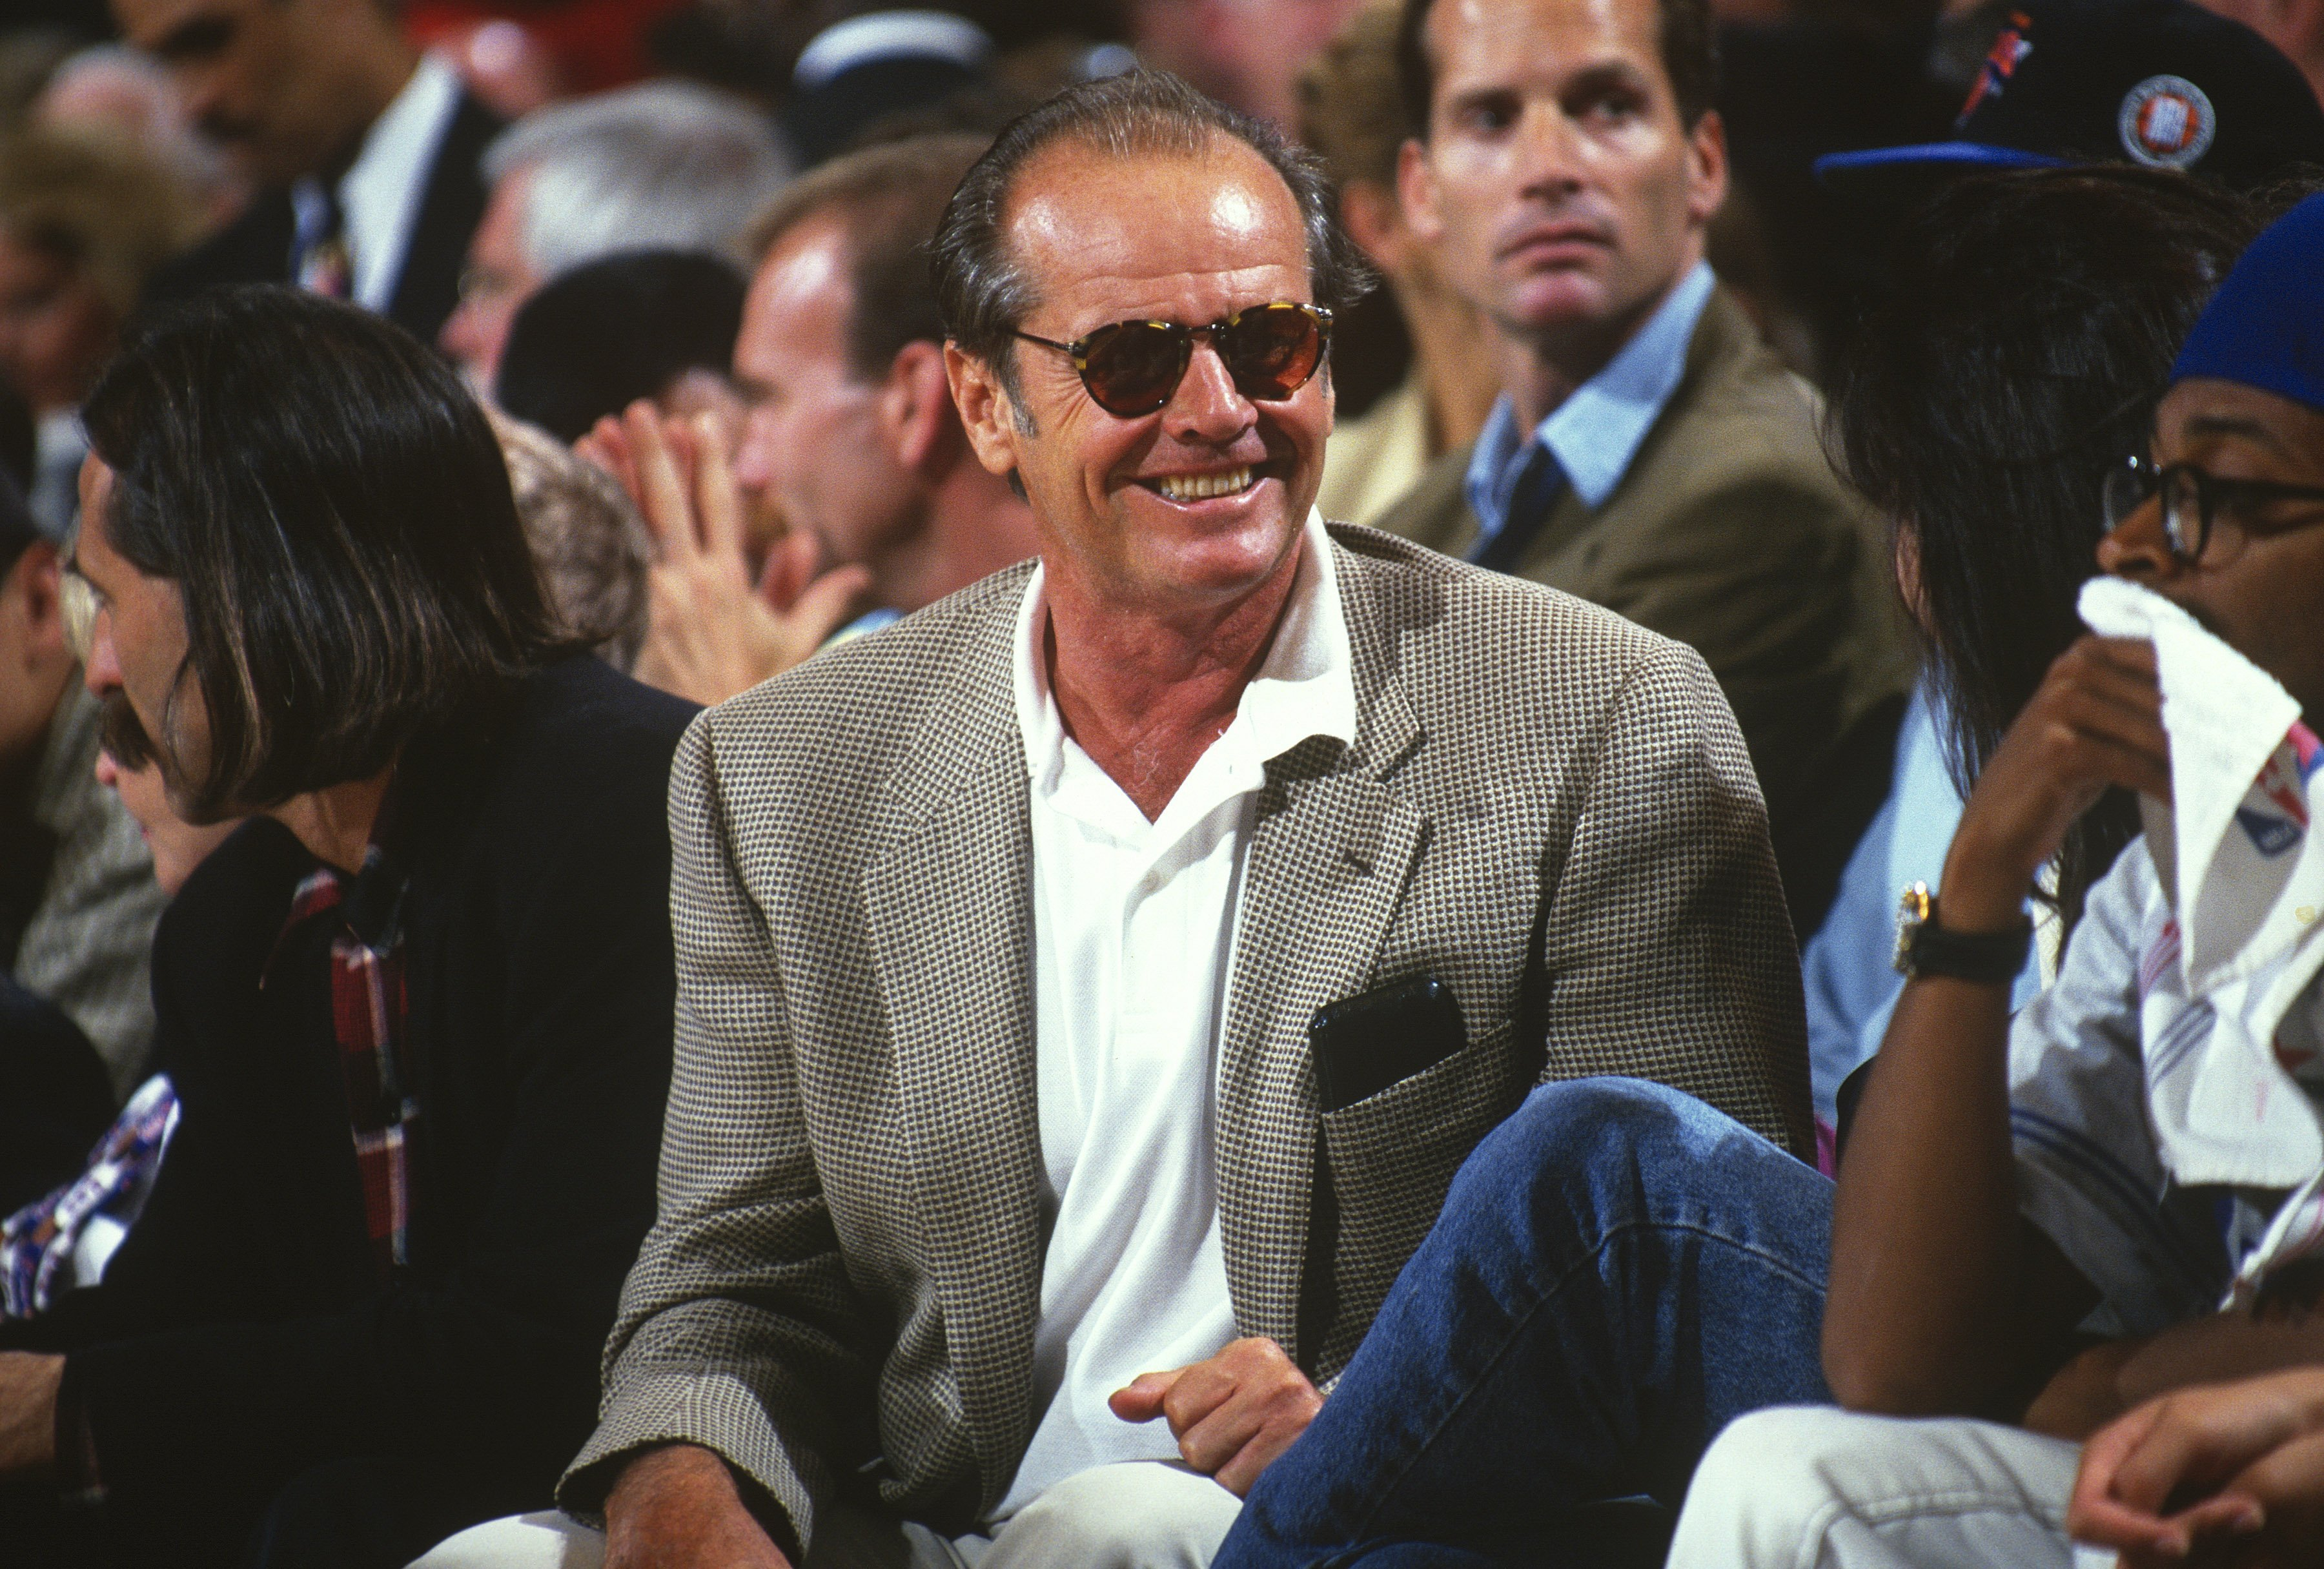 Jack Nicholson looks on during the 1994 NBA Finals at Madison Square Garden in the Manhattan Borough of New York City. | Source: Getty Images.